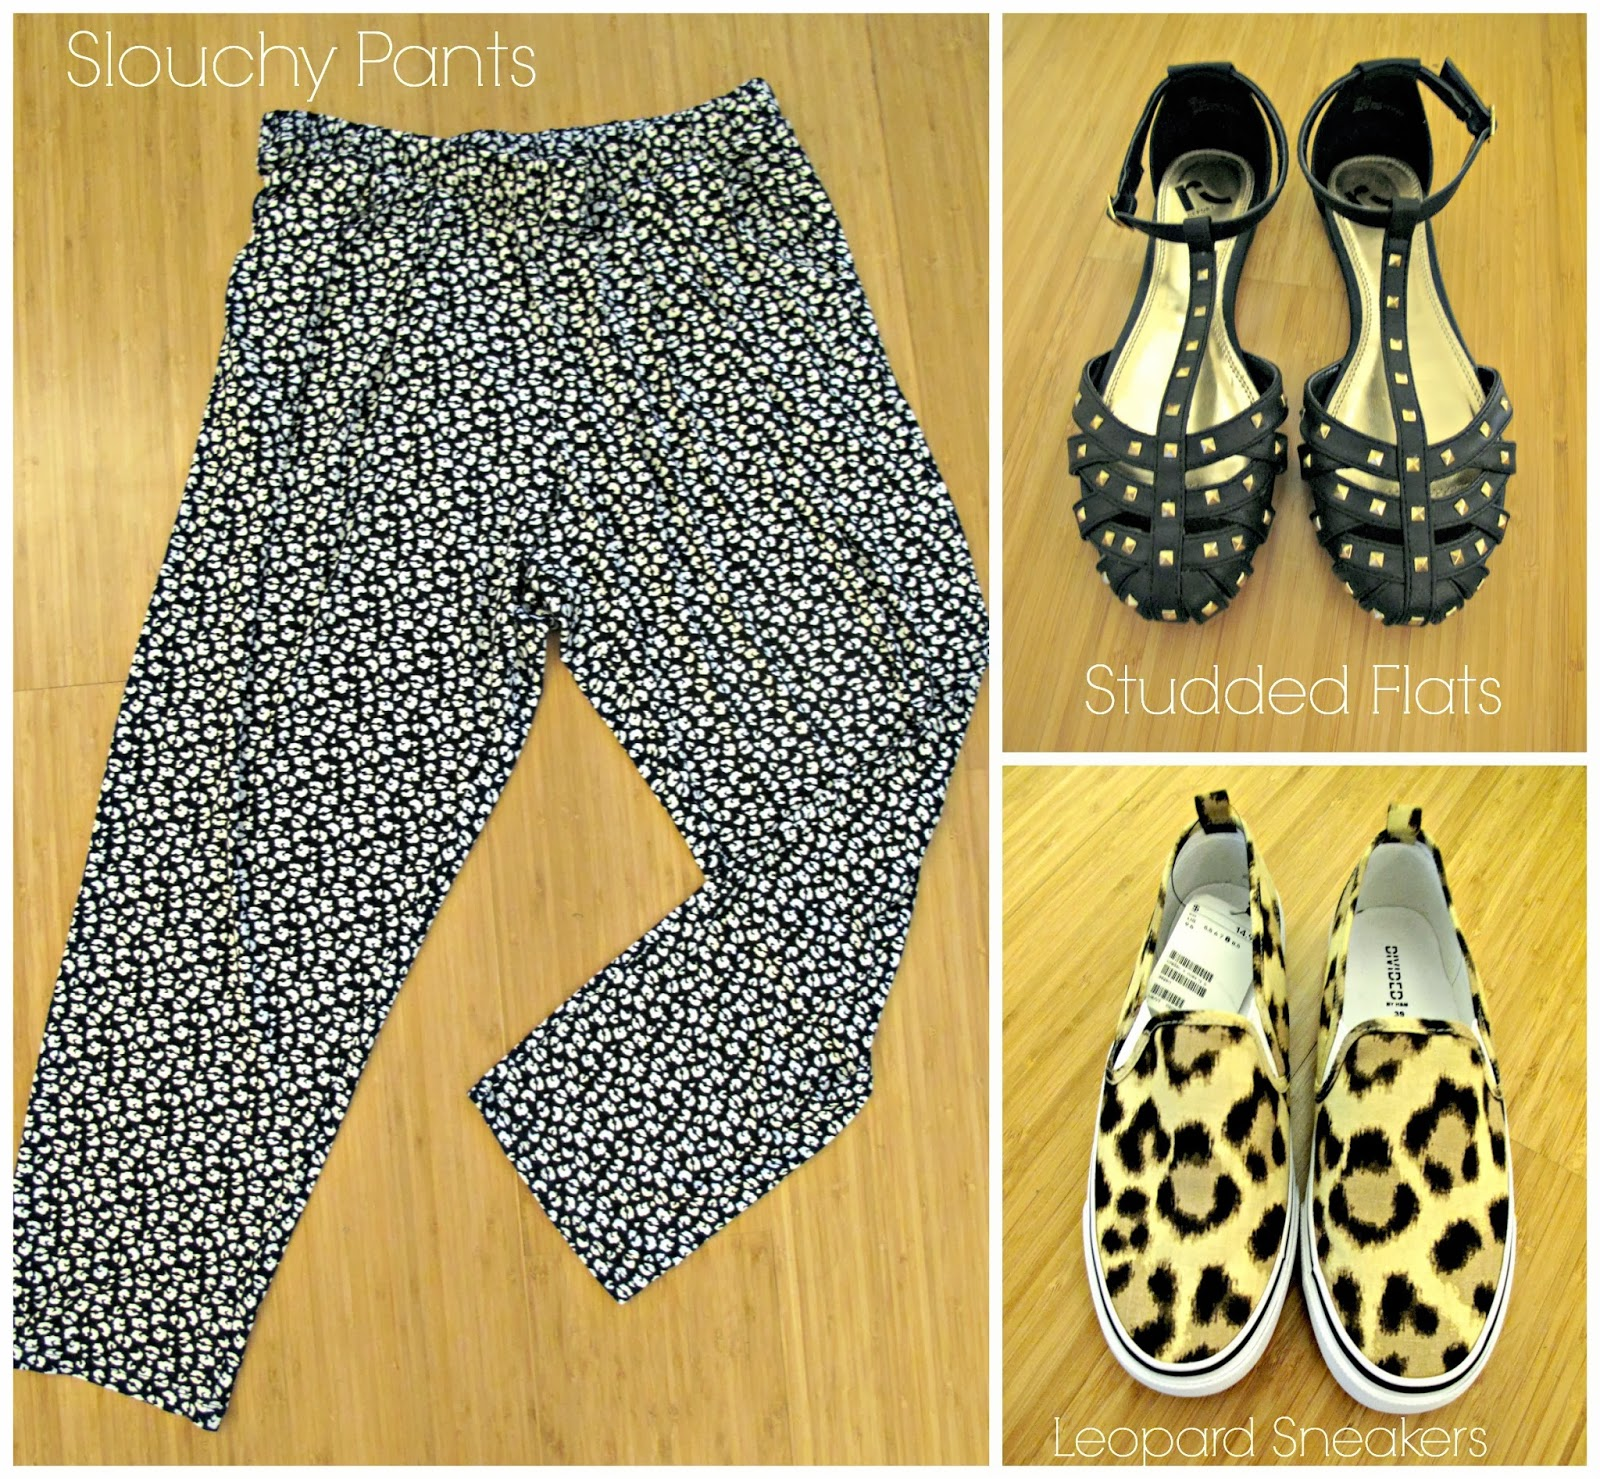 bobeau, slouchy pants, report, stud, black, flats, h and m, leopard print, canvas, sneakers, plimsolls, ross